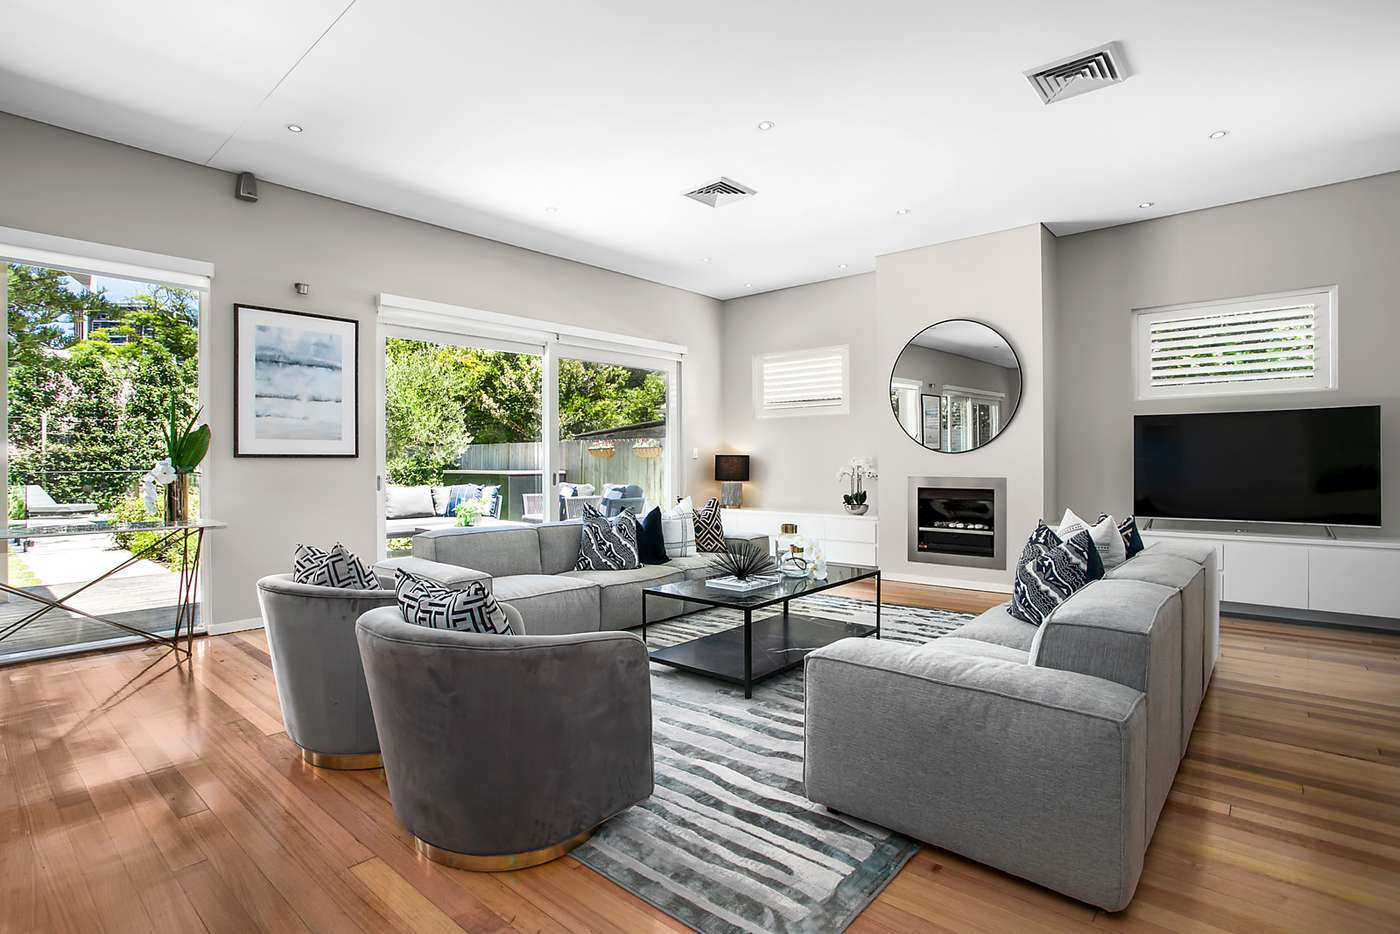 Fifth view of Homely house listing, 27 Milroy Avenue, Kensington NSW 2033